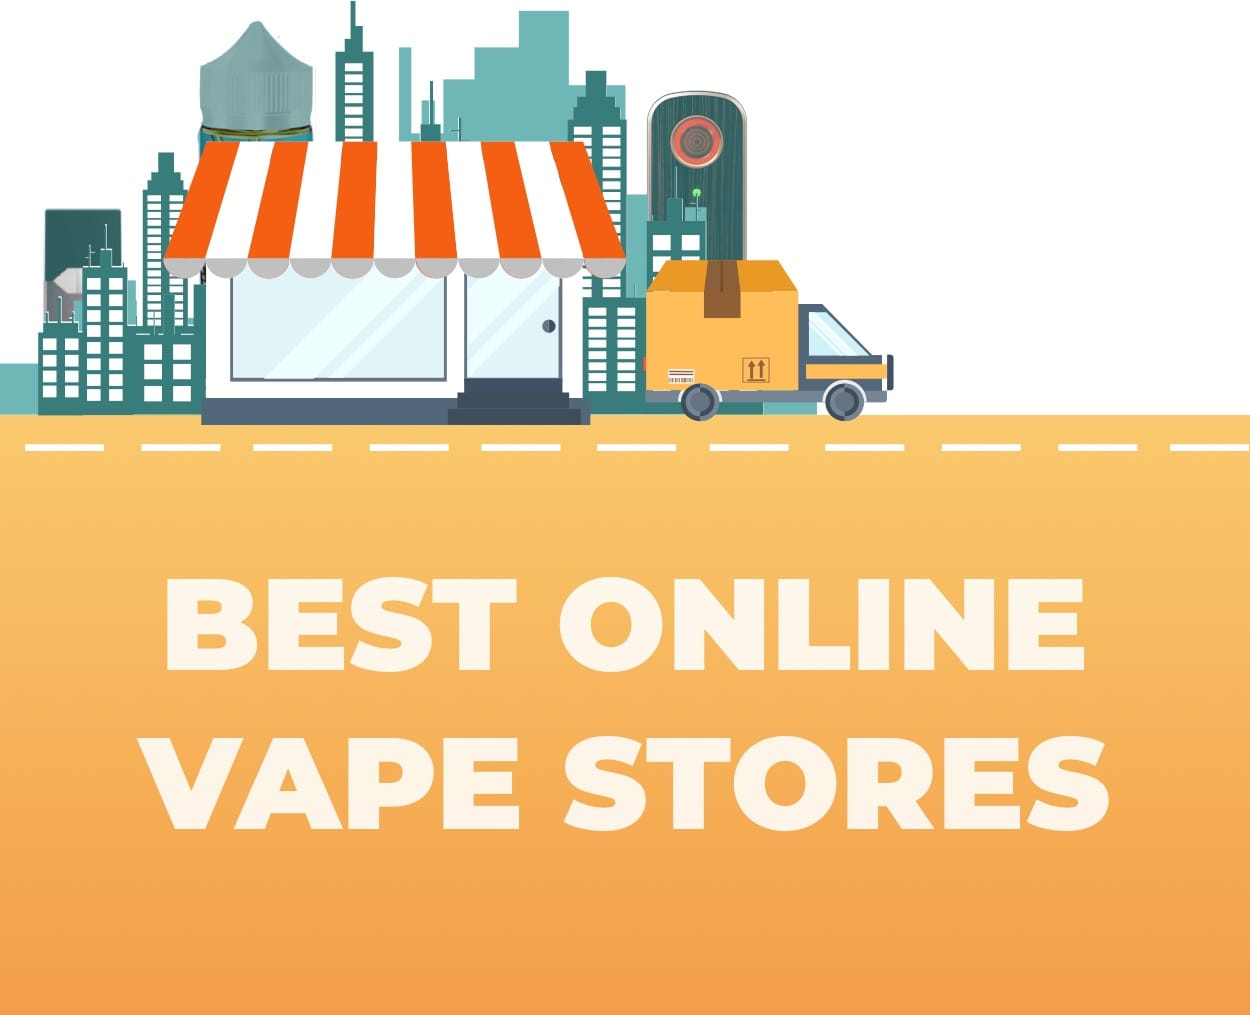 Best Online Vape Stores and Shops in the U.S.